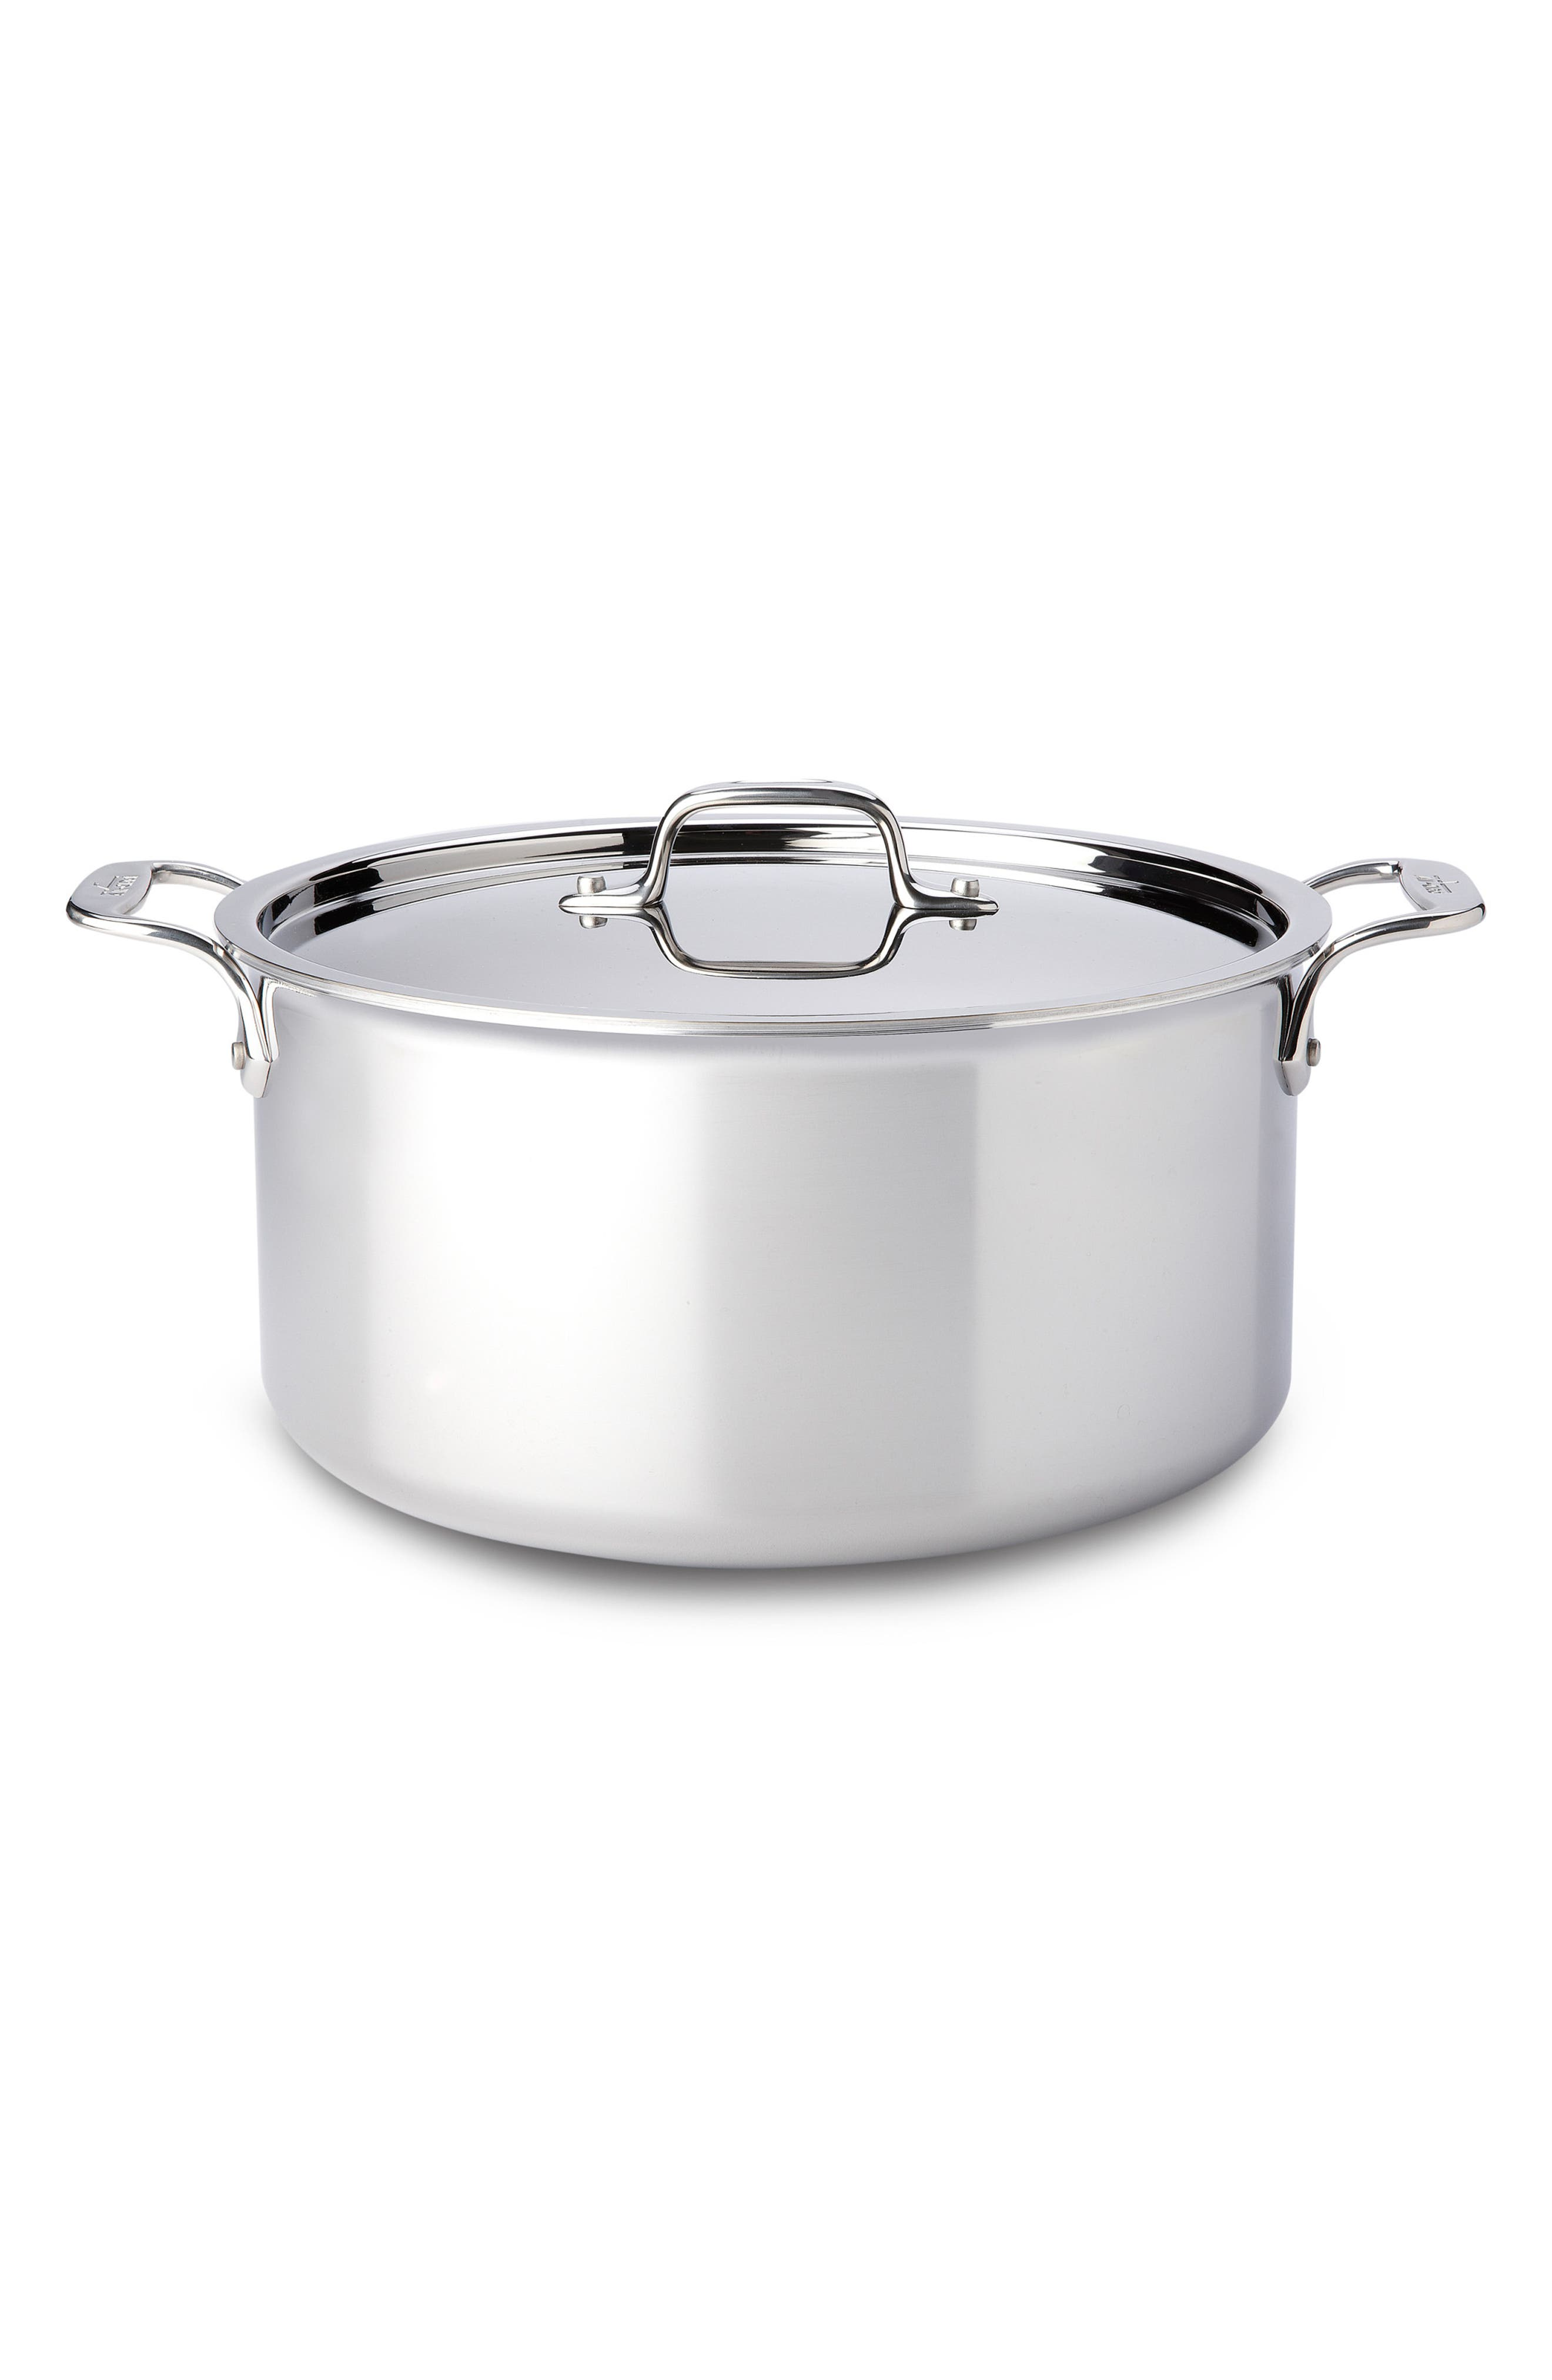 8-Quart Stainless Steel Stockpot,                             Main thumbnail 1, color,                             SILVER